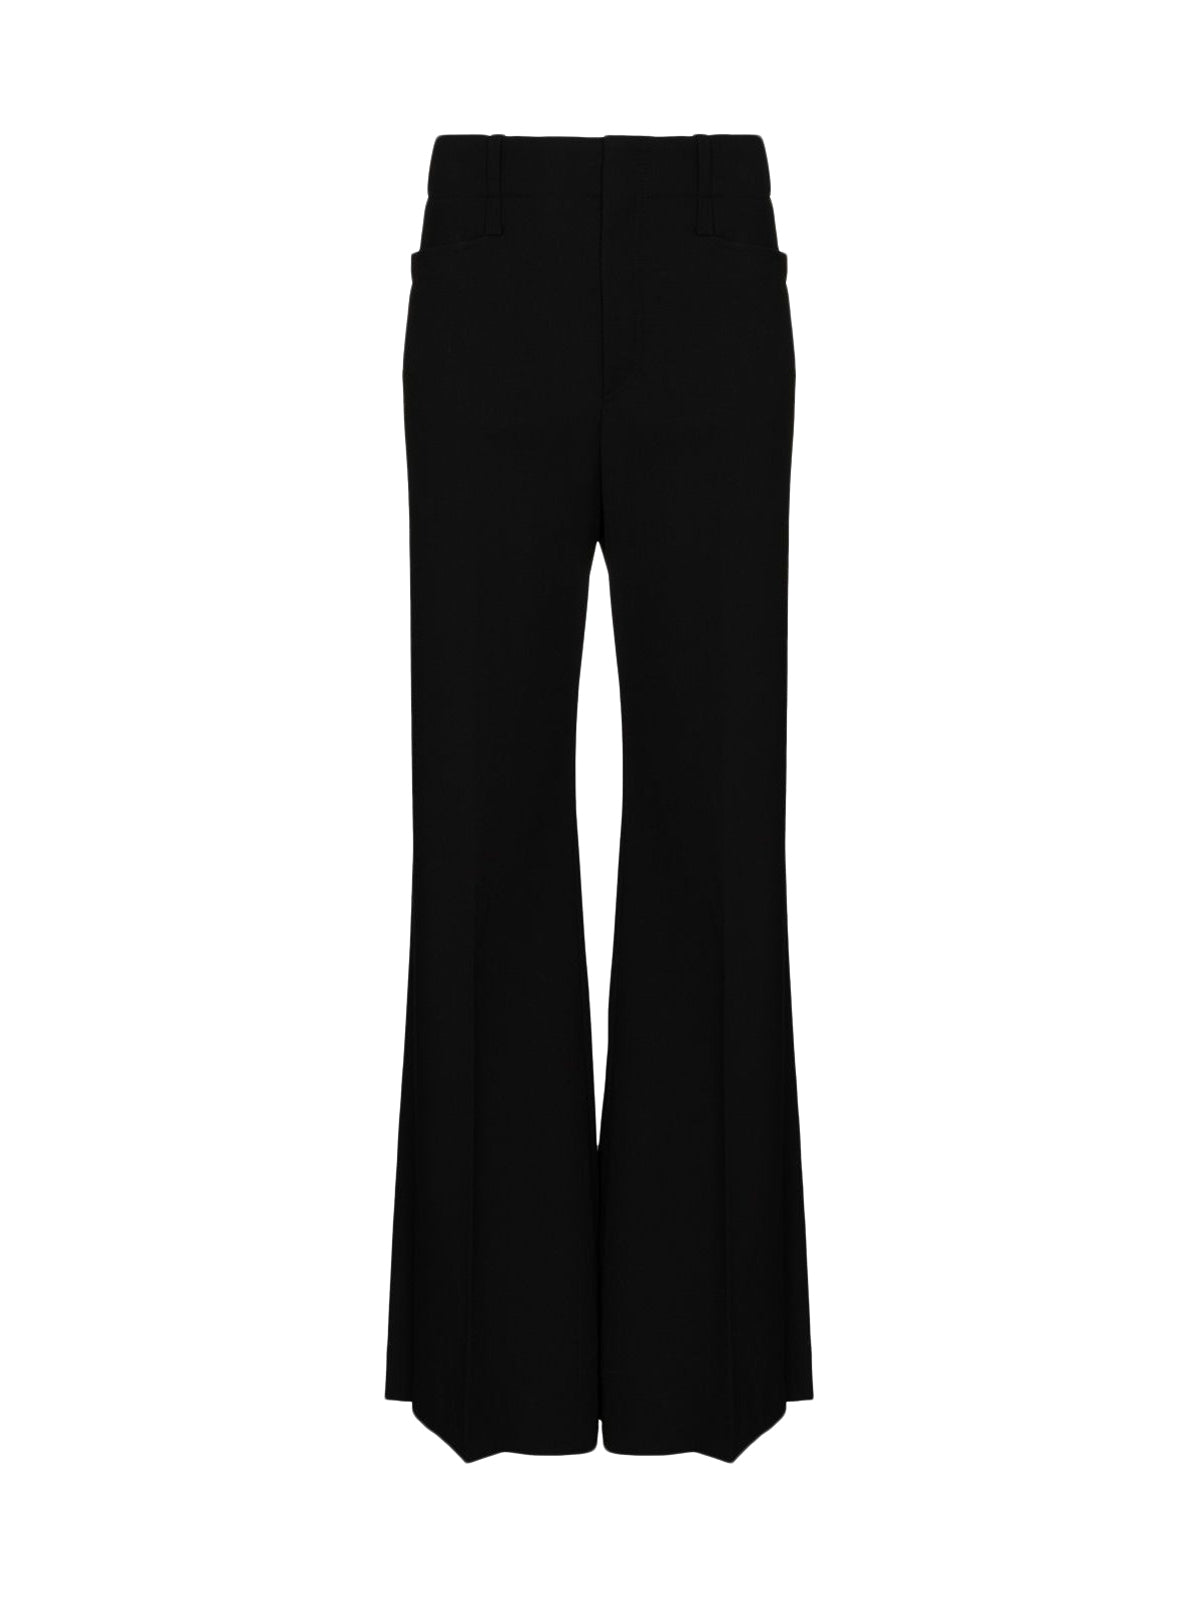 HIGH-WAISTED TROUSERS